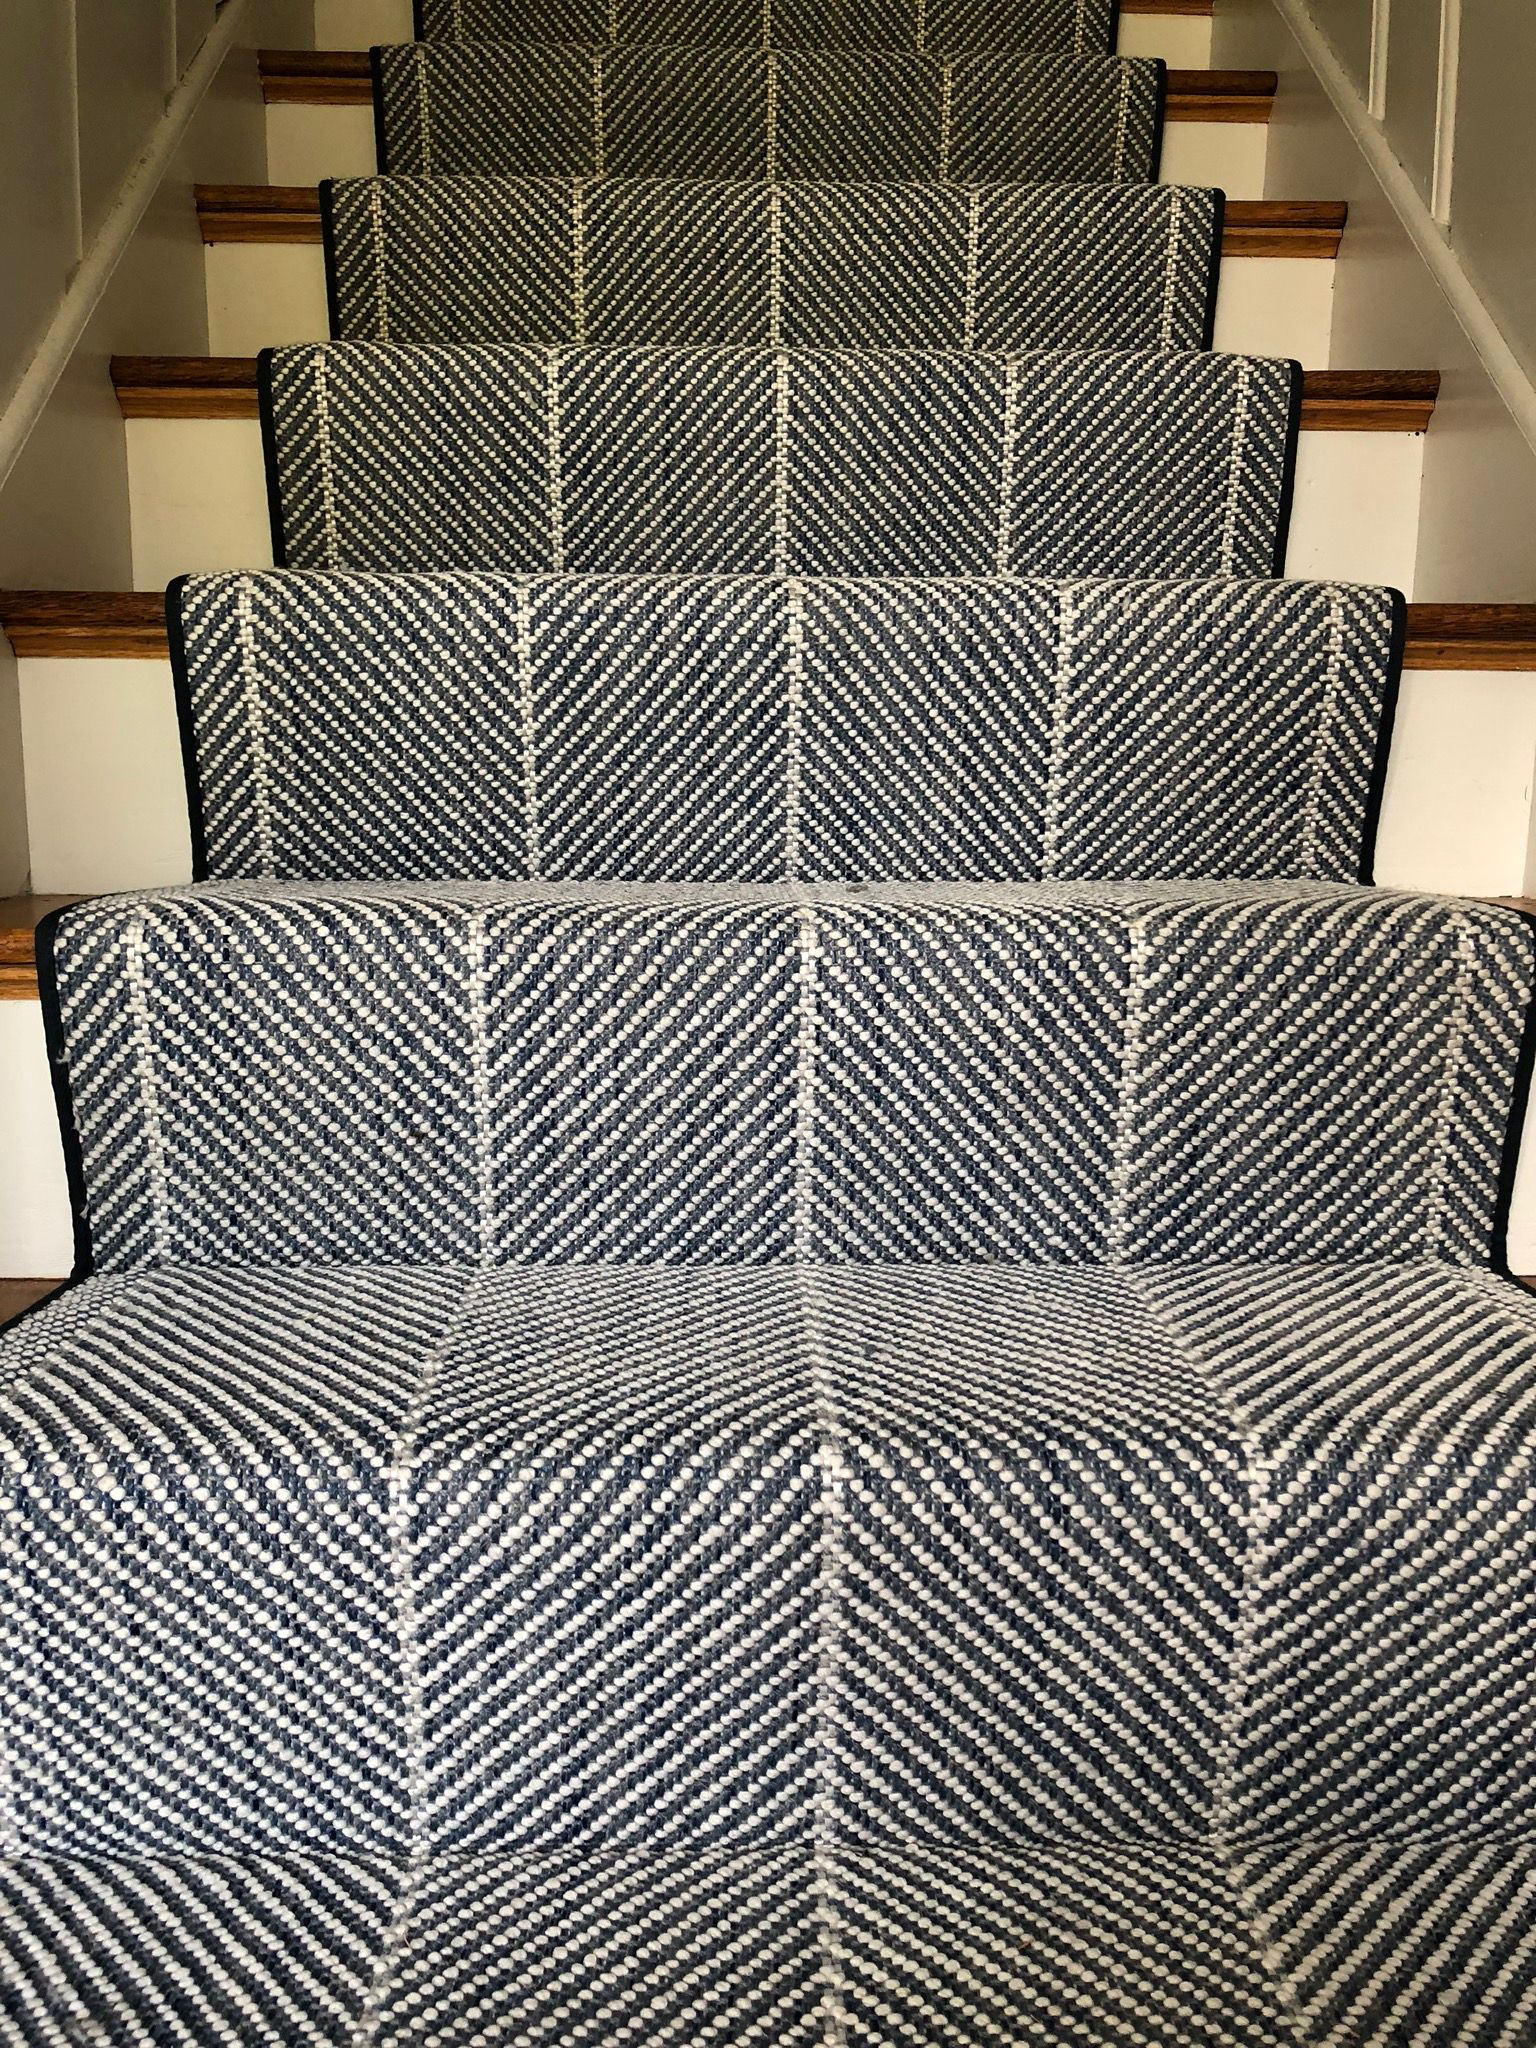 Who Said Indoor Outdoor Carpets Had To Be Boring Our Indoor   Outdoor Carpet For Stairs   Navy Pattern   Artificial Grass   Front Entrance   Heavy Duty   Mosaic